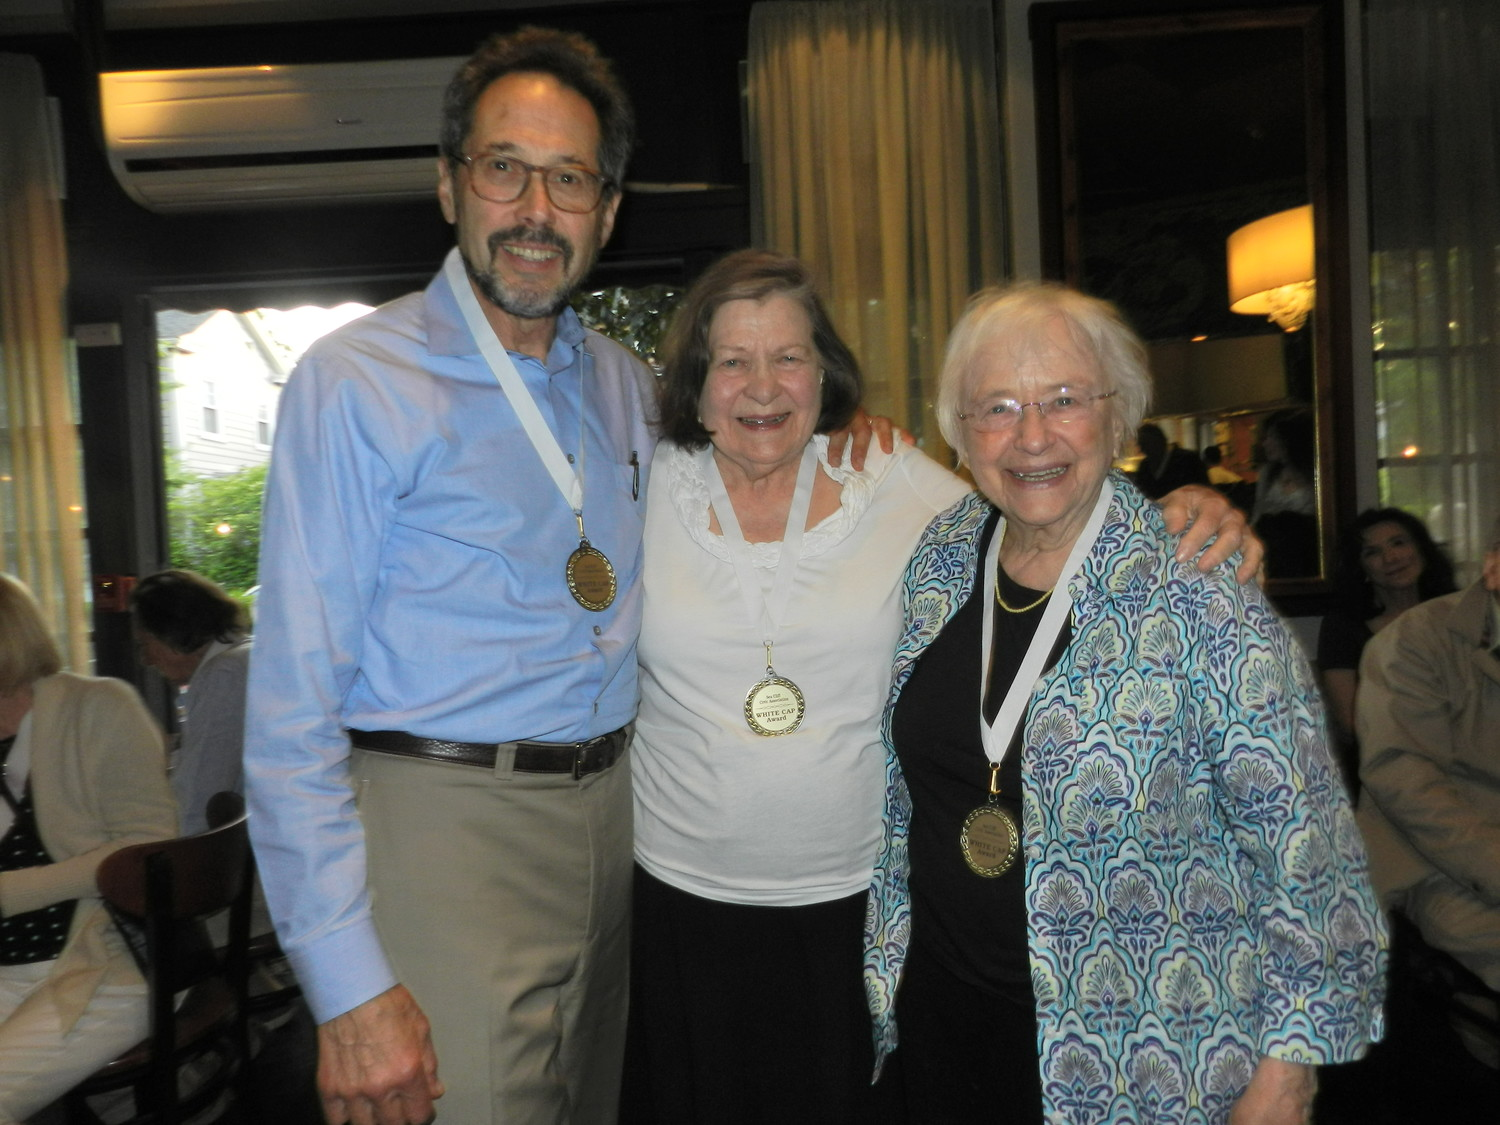 The 2018 White Caps recipients: Charlie Weinstein, Estelle Moore and Mimi Leipzig.